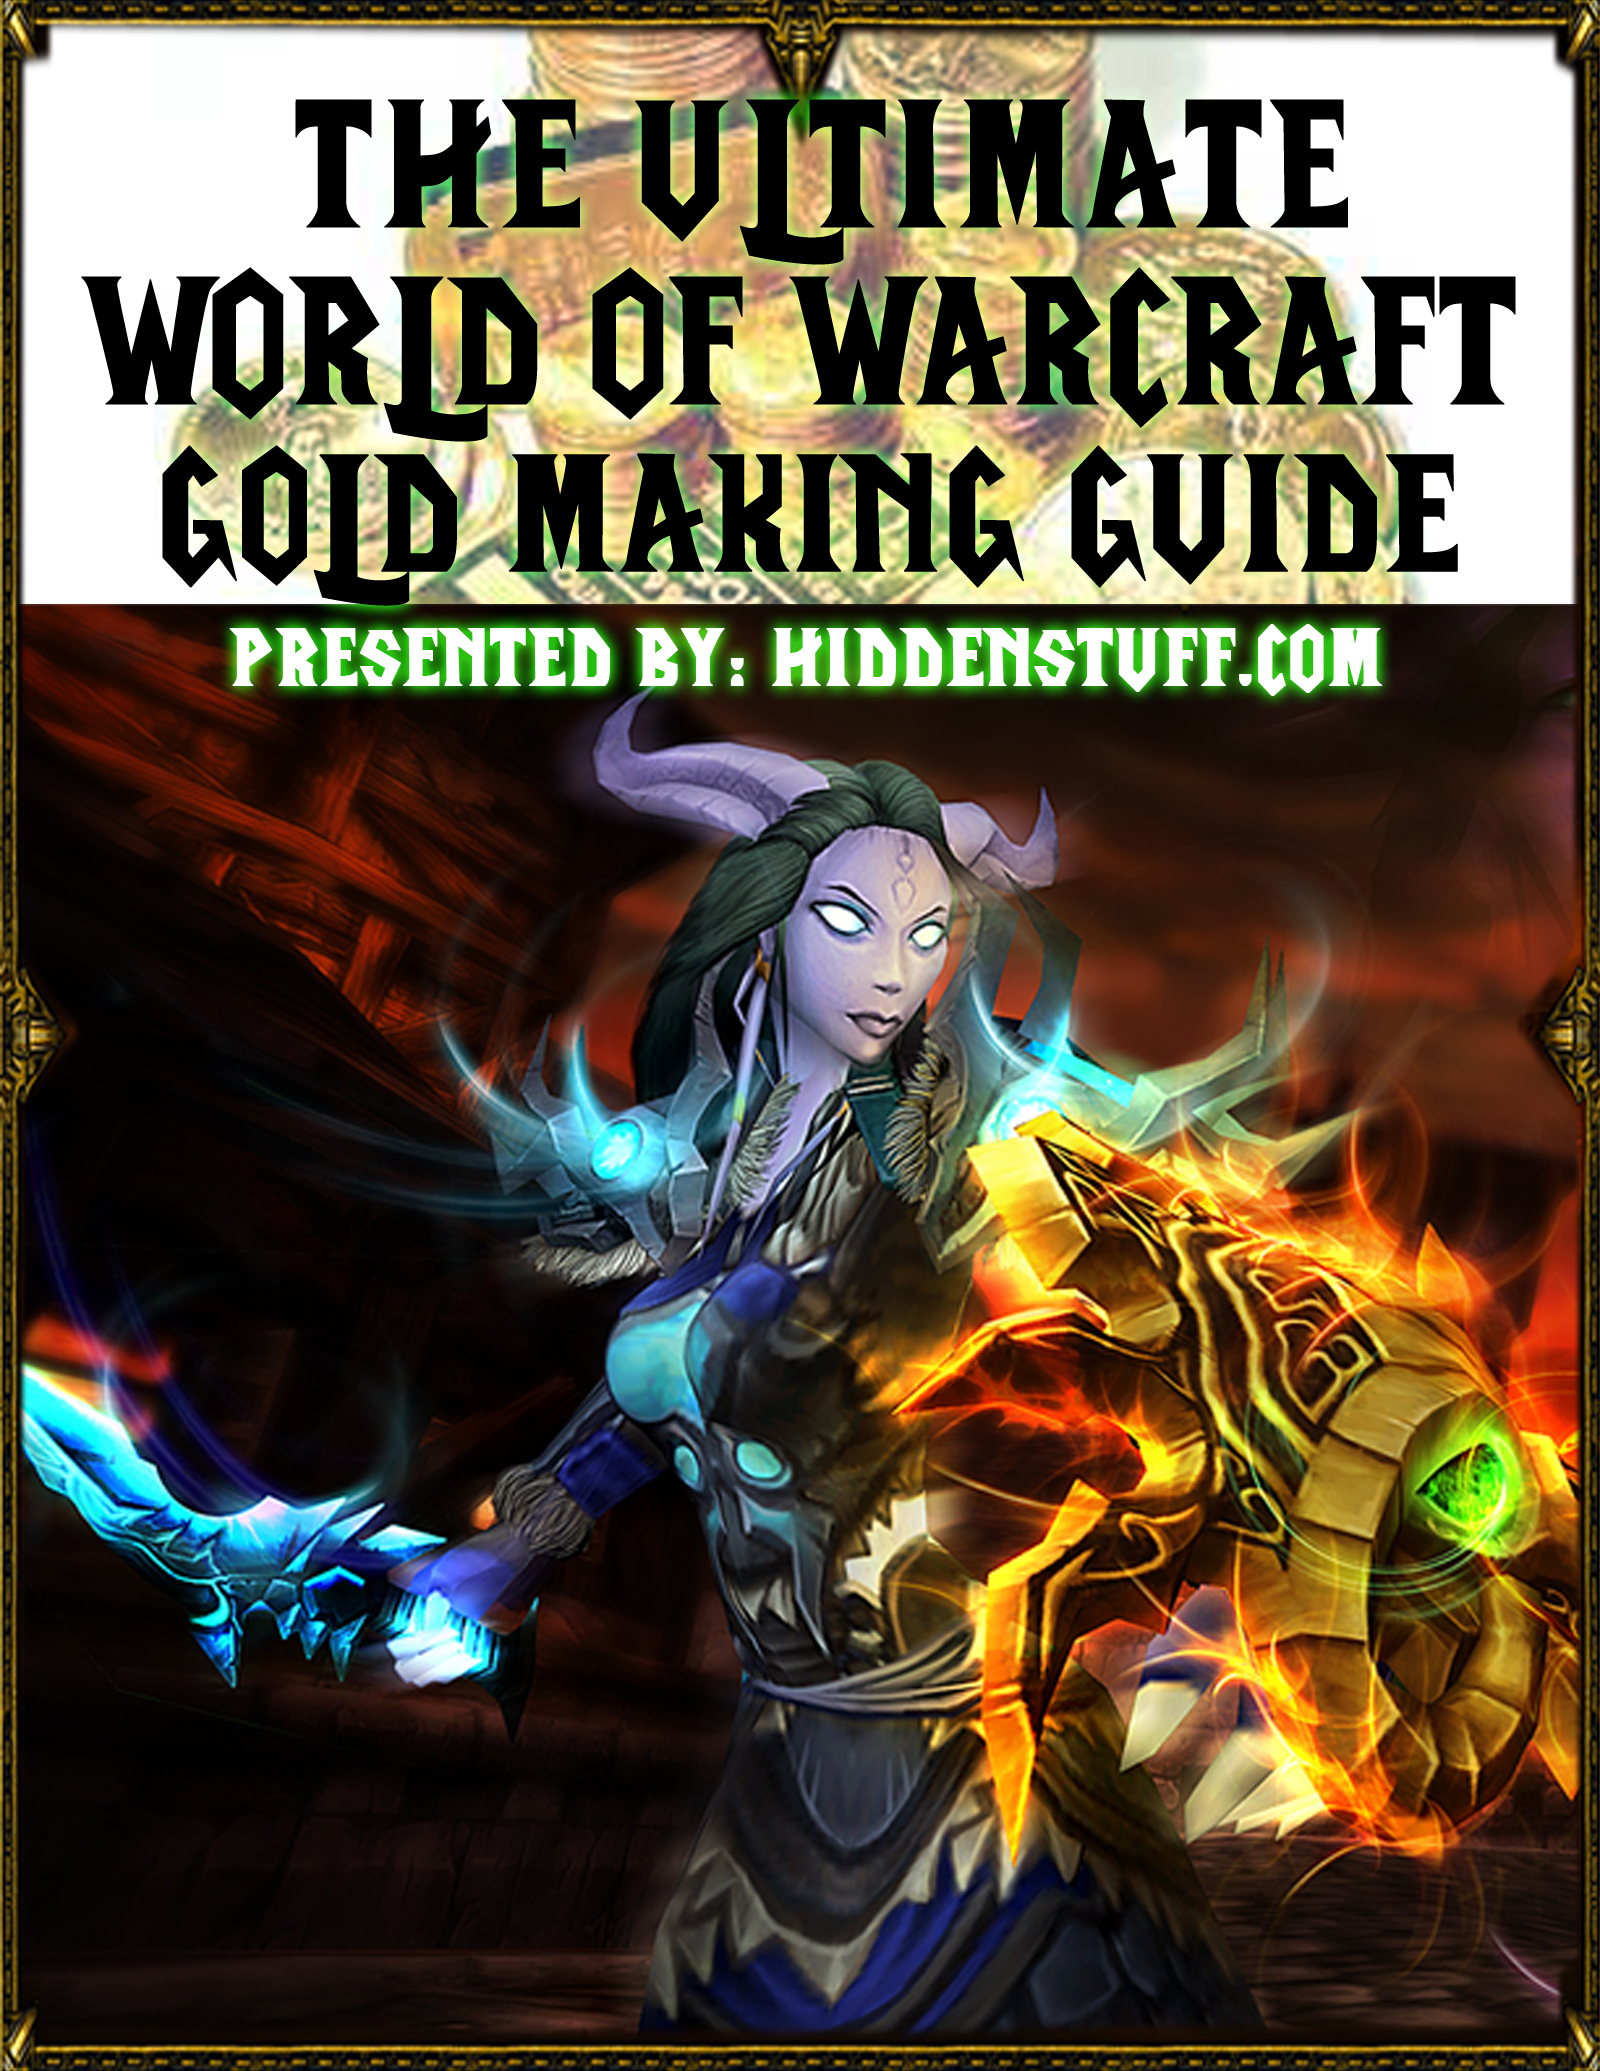 World of Warcraft Epic Gold Making Guide